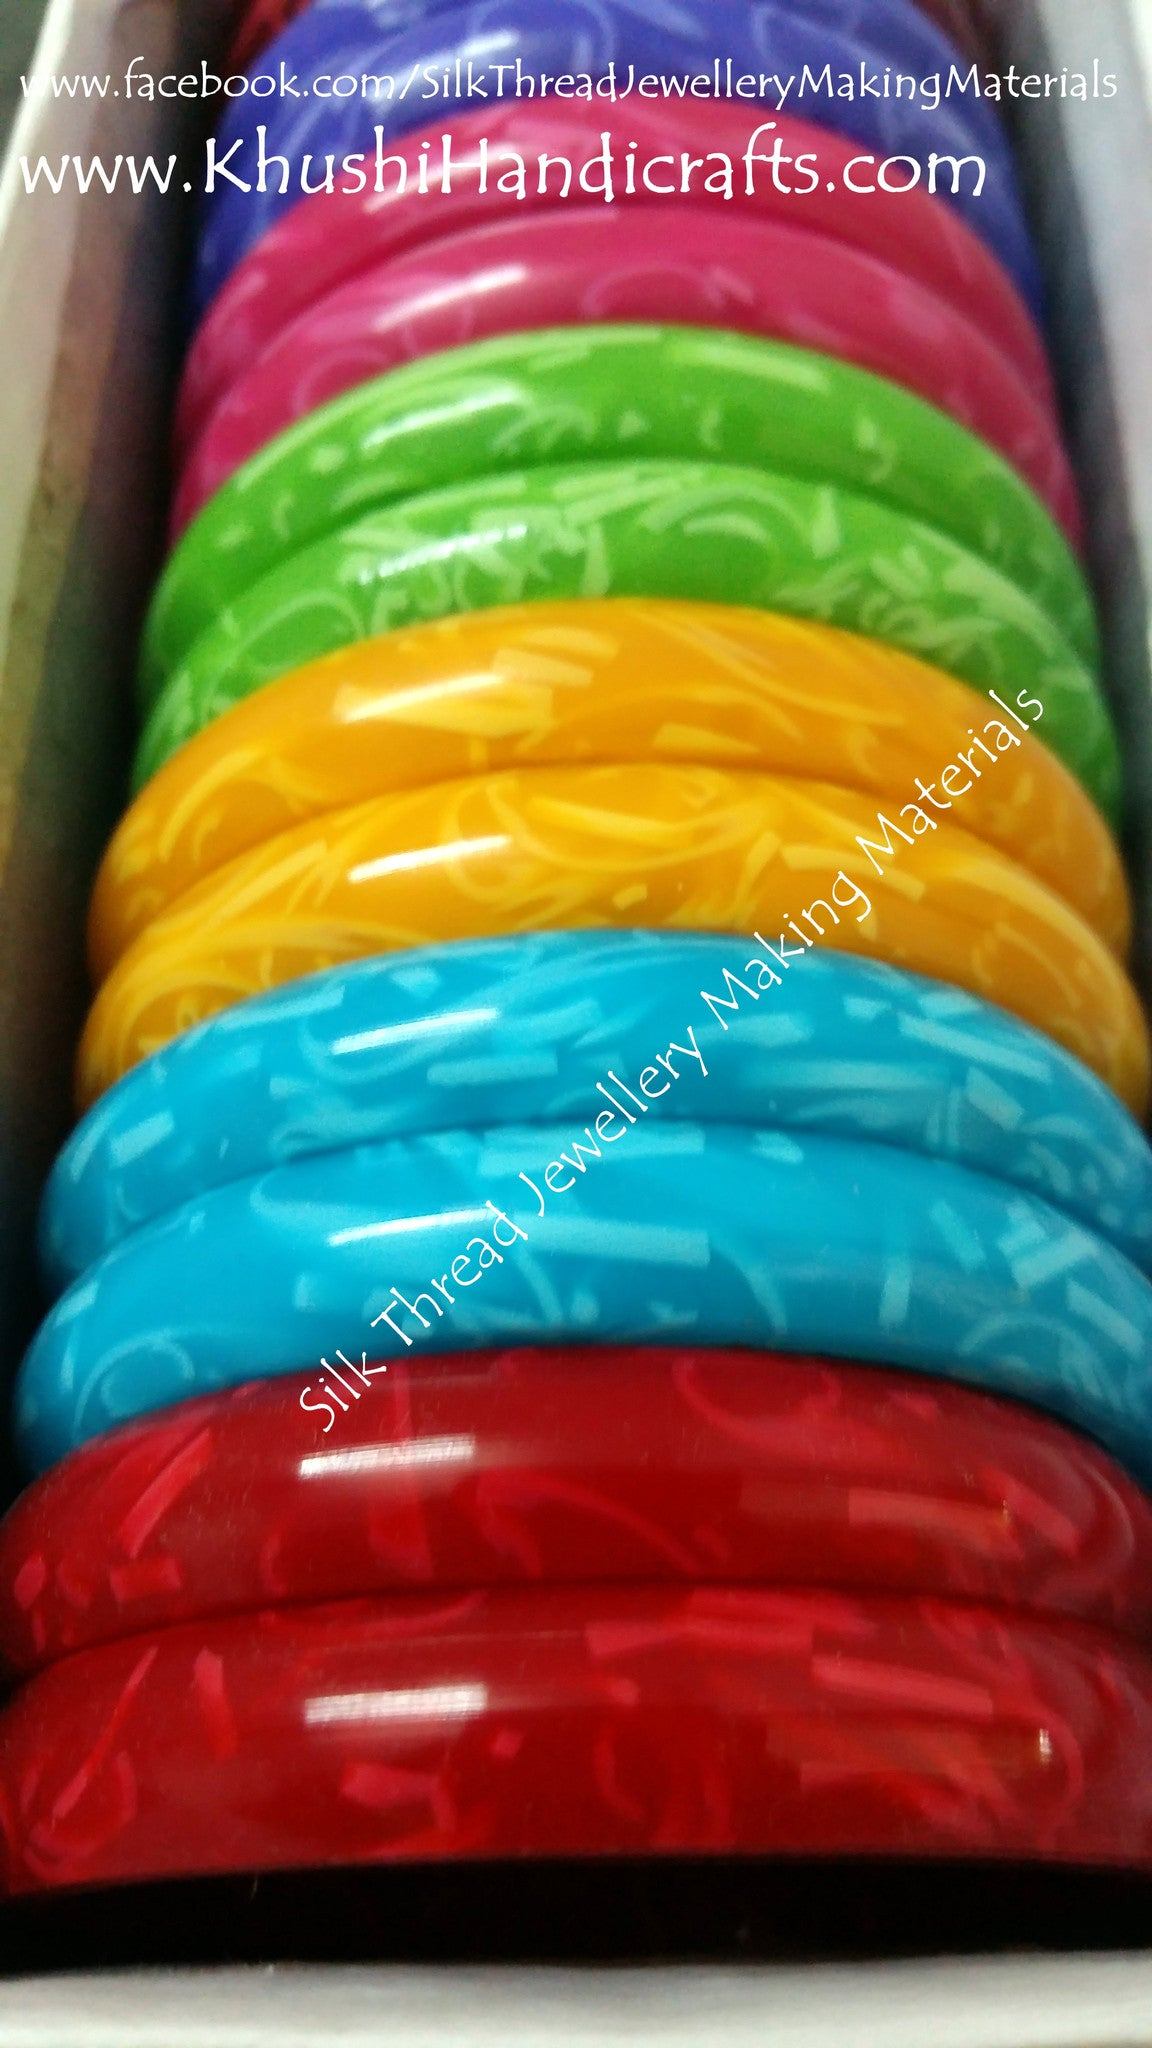 10mm bangke bases for  for Silk thread Jewellery